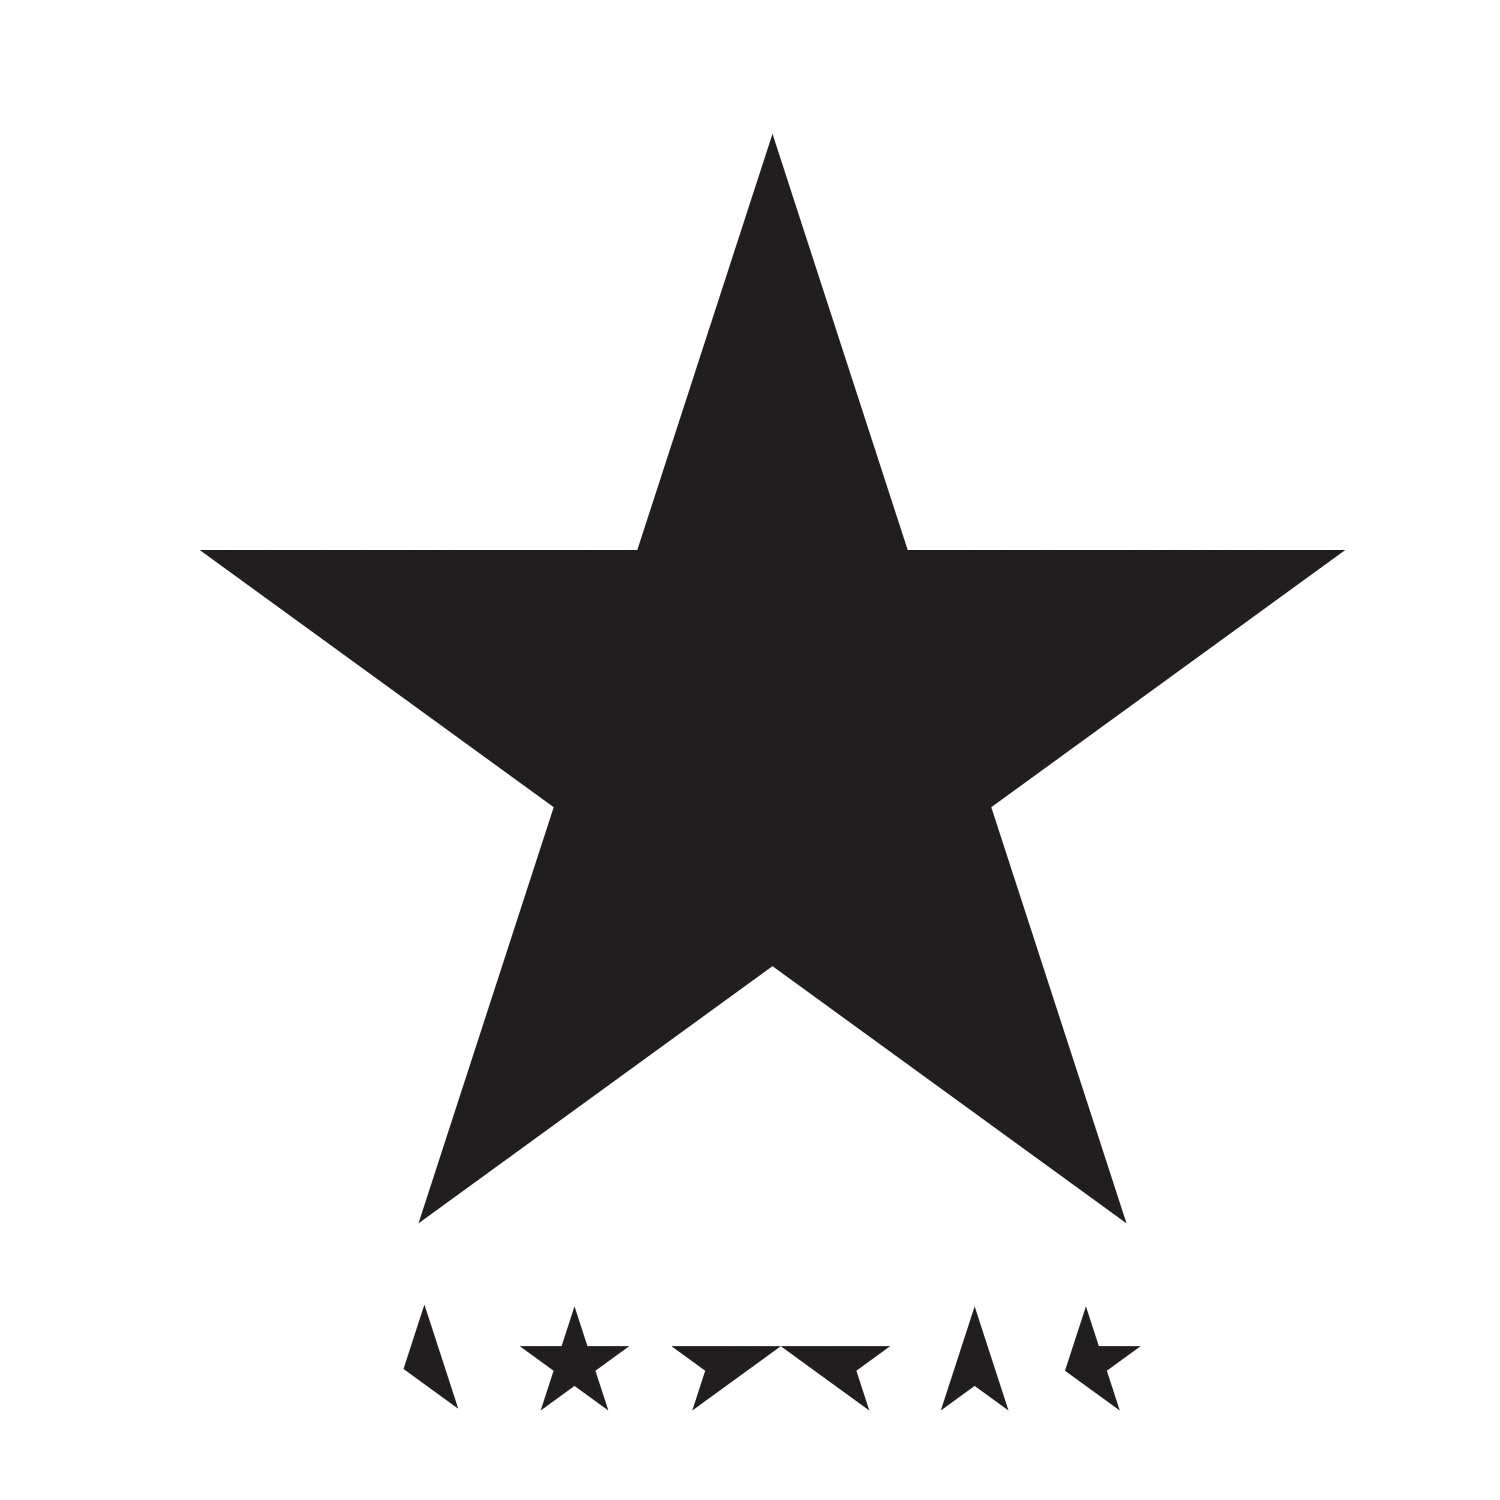 David Bowie - Blackstar.jpg - 35.56 KB